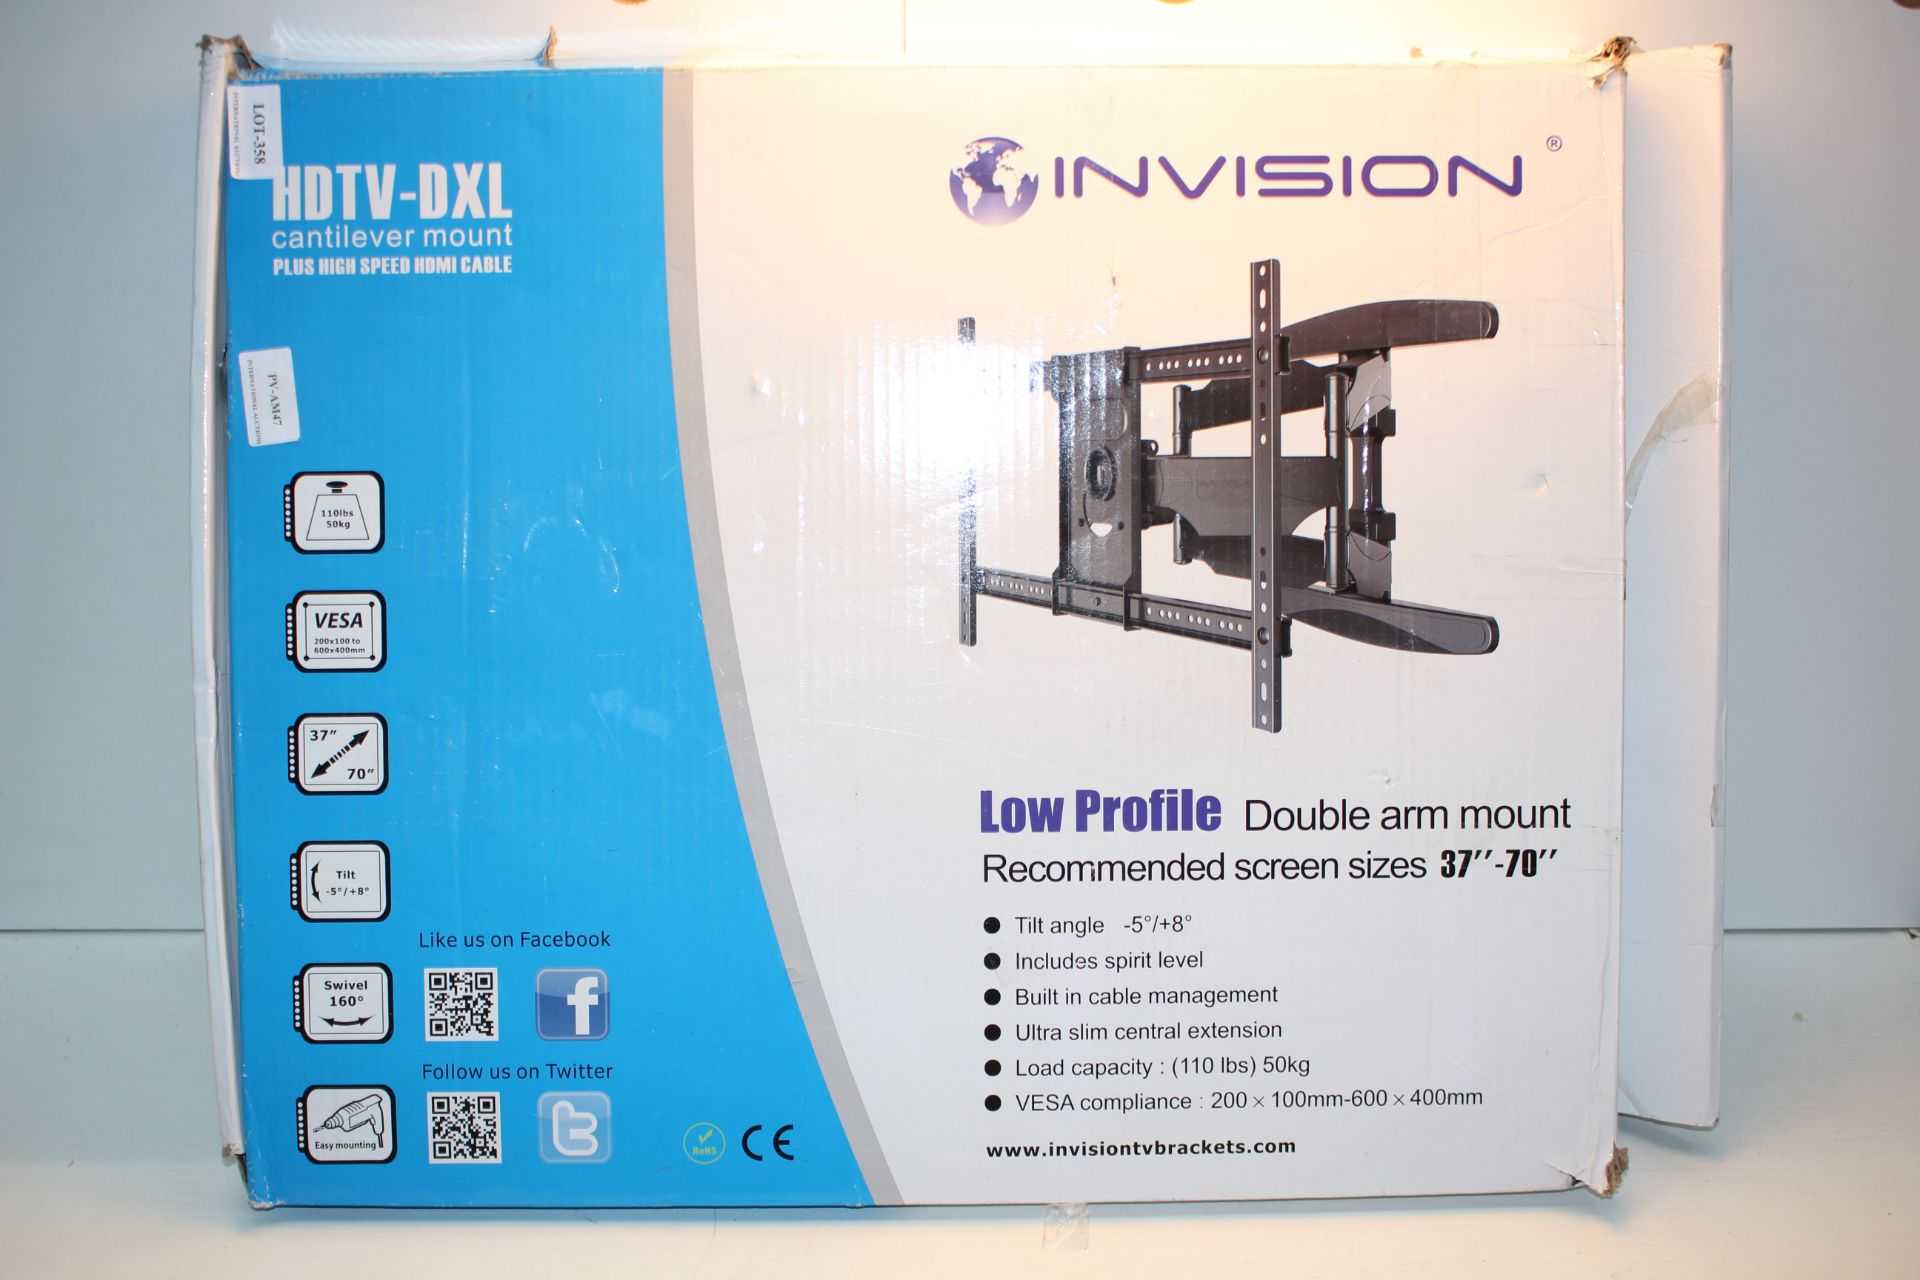 "BOXED INVISION HDTV-DXL CANTILEVER MOUNT LOW PROFILE DOUBLE ARM MOUNT 37""-70""Condition"